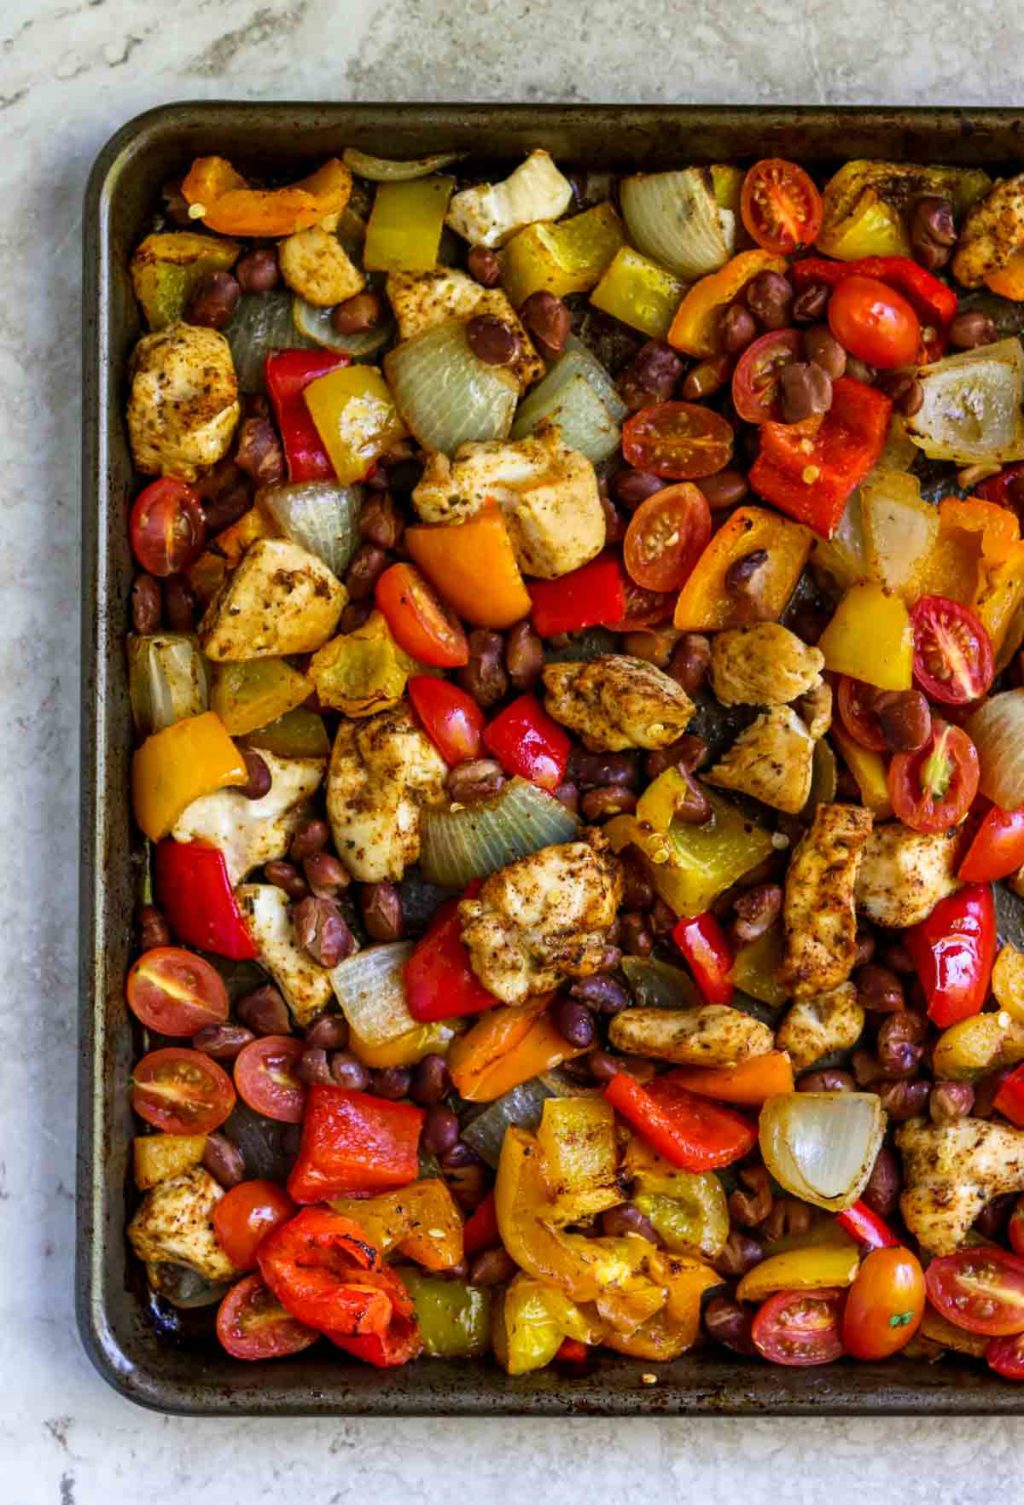 chicken and veggies seasoned with Mexican spices that have been cooked on a sheet pan